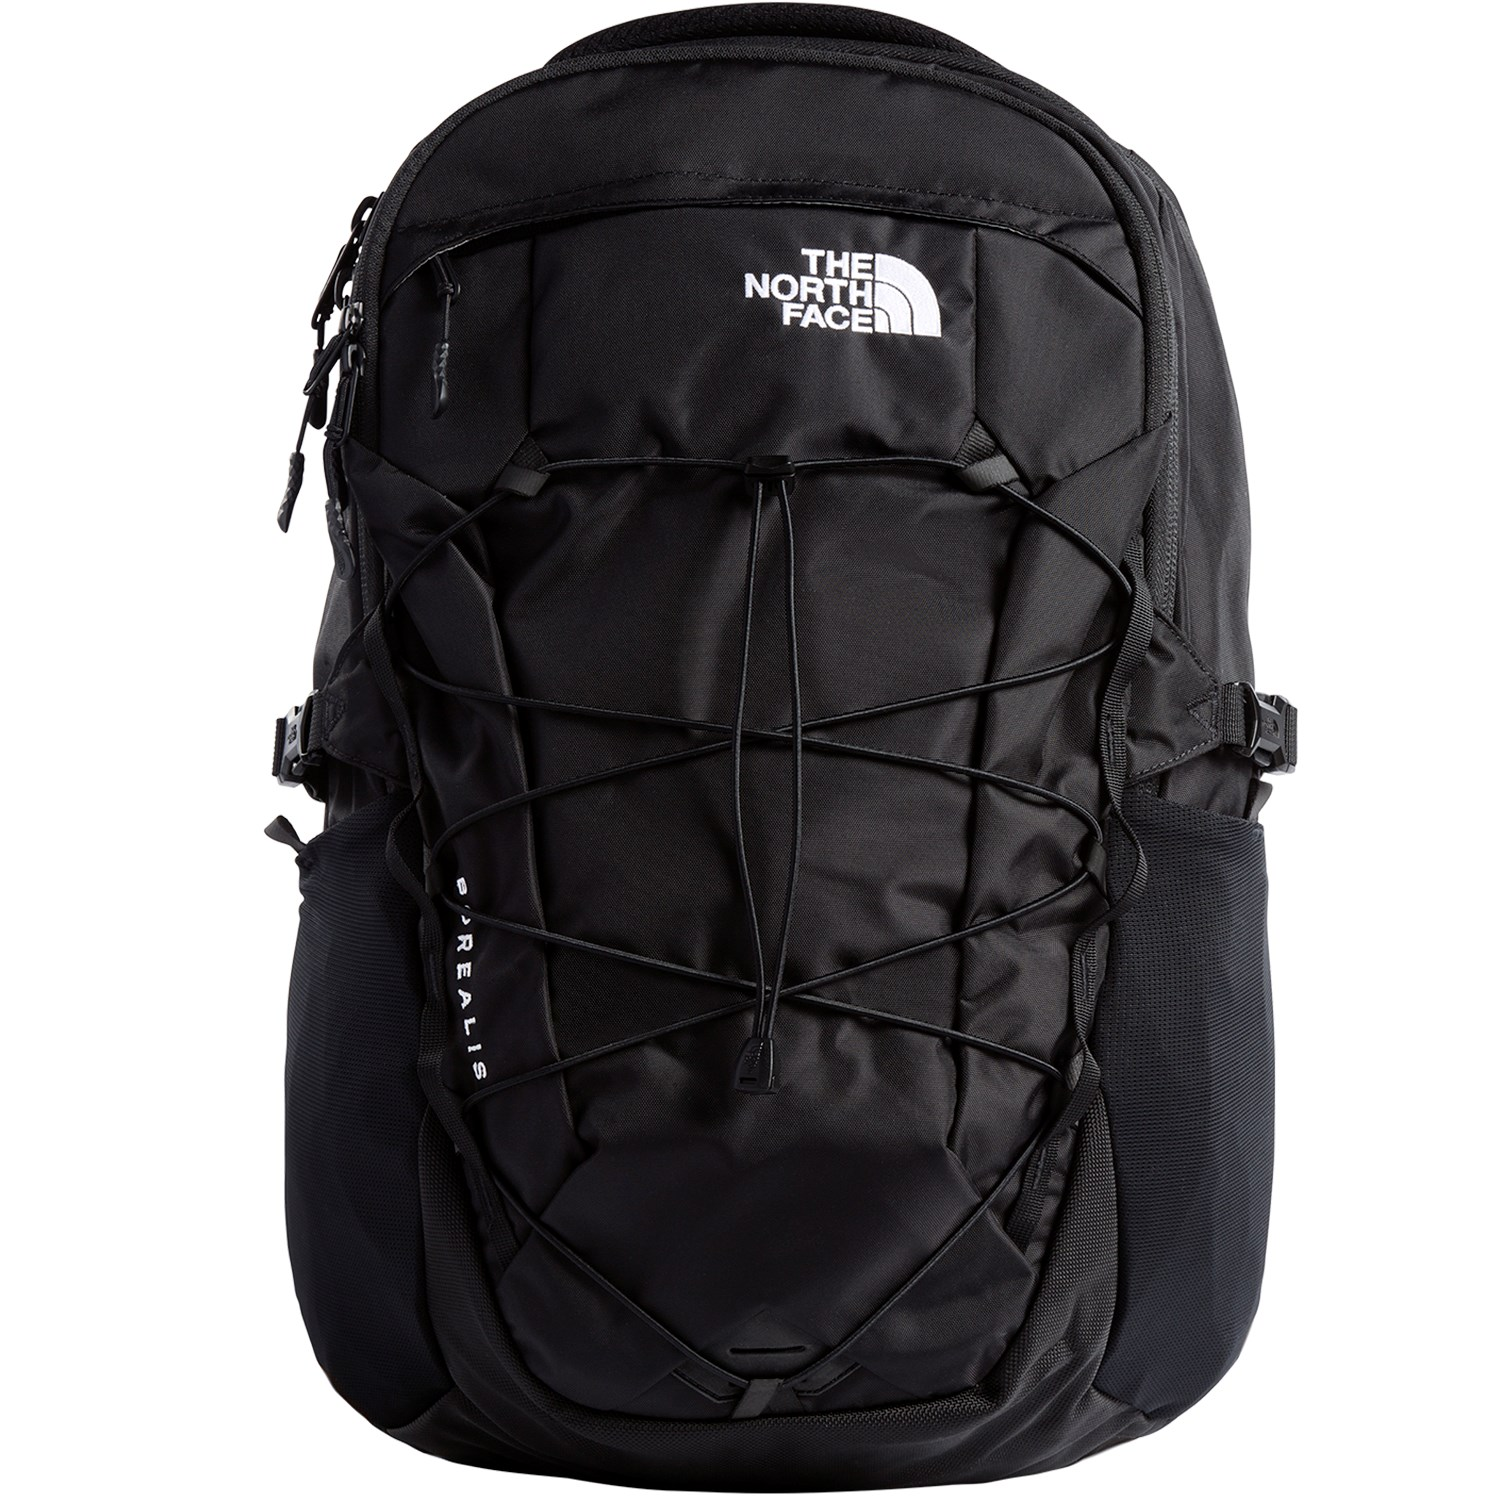 The North Face Borealis Backpack Evo